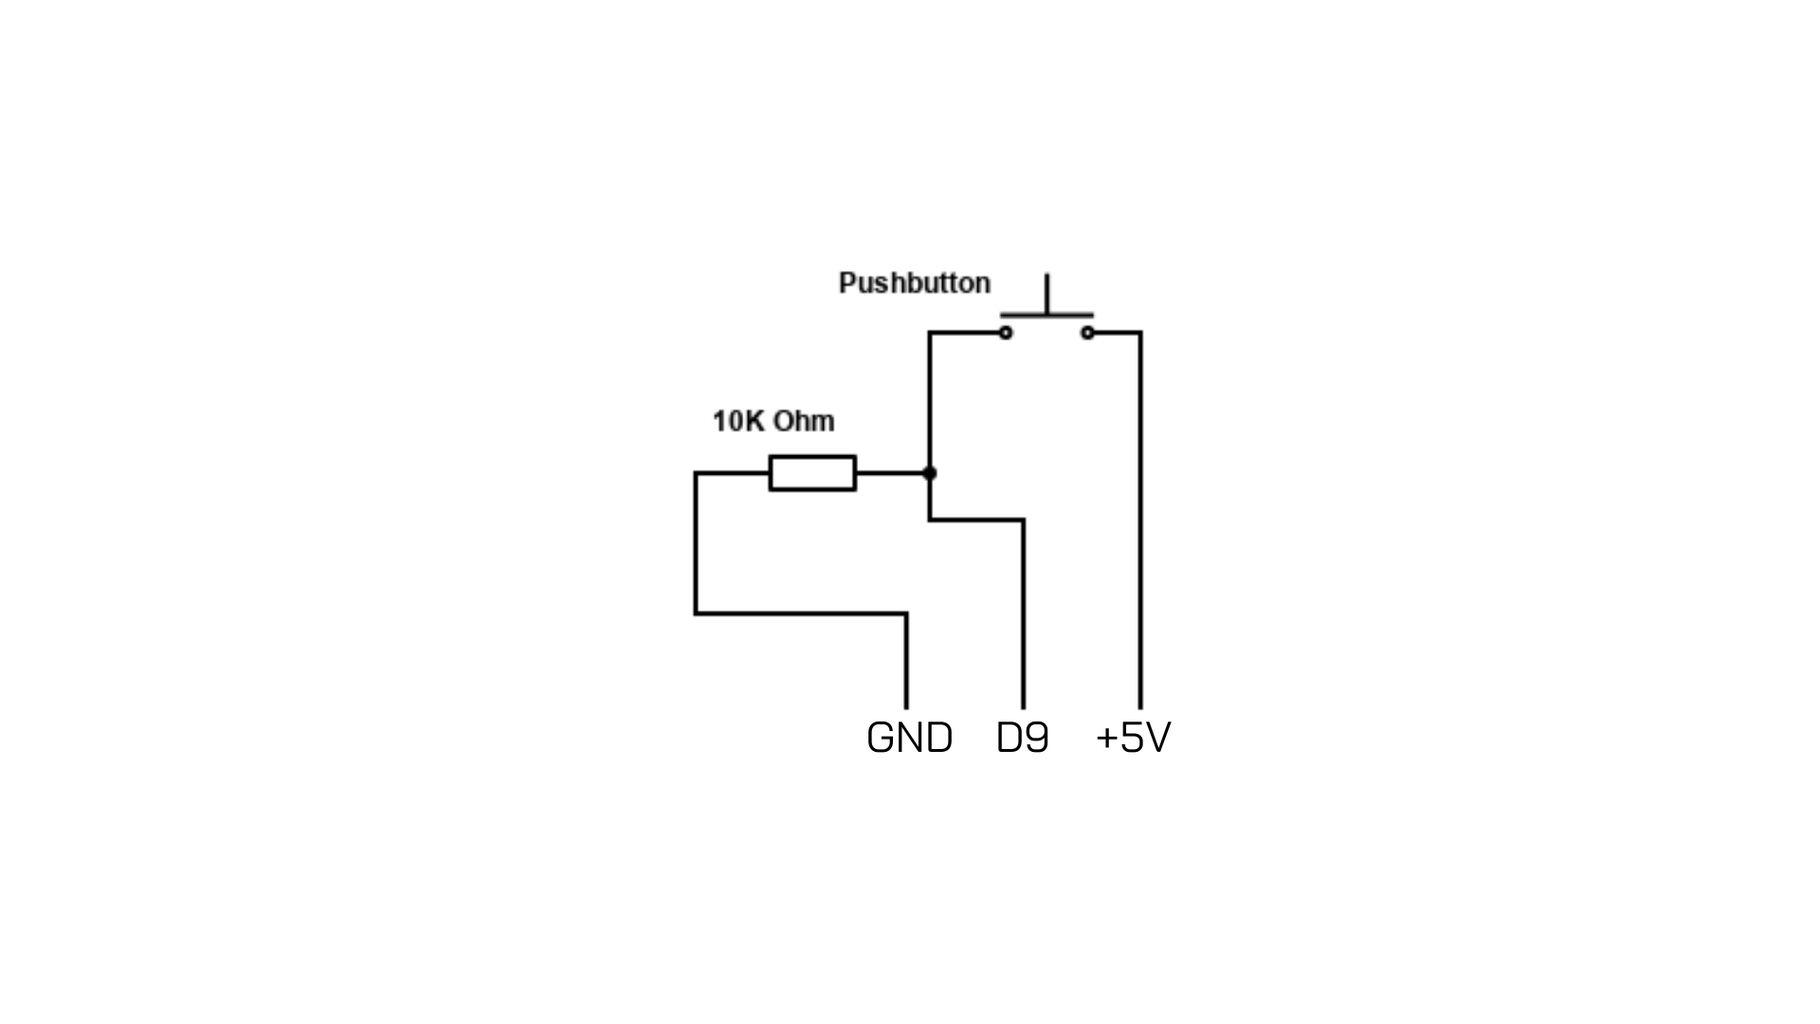 Small Circuit Board for the Pushbutton